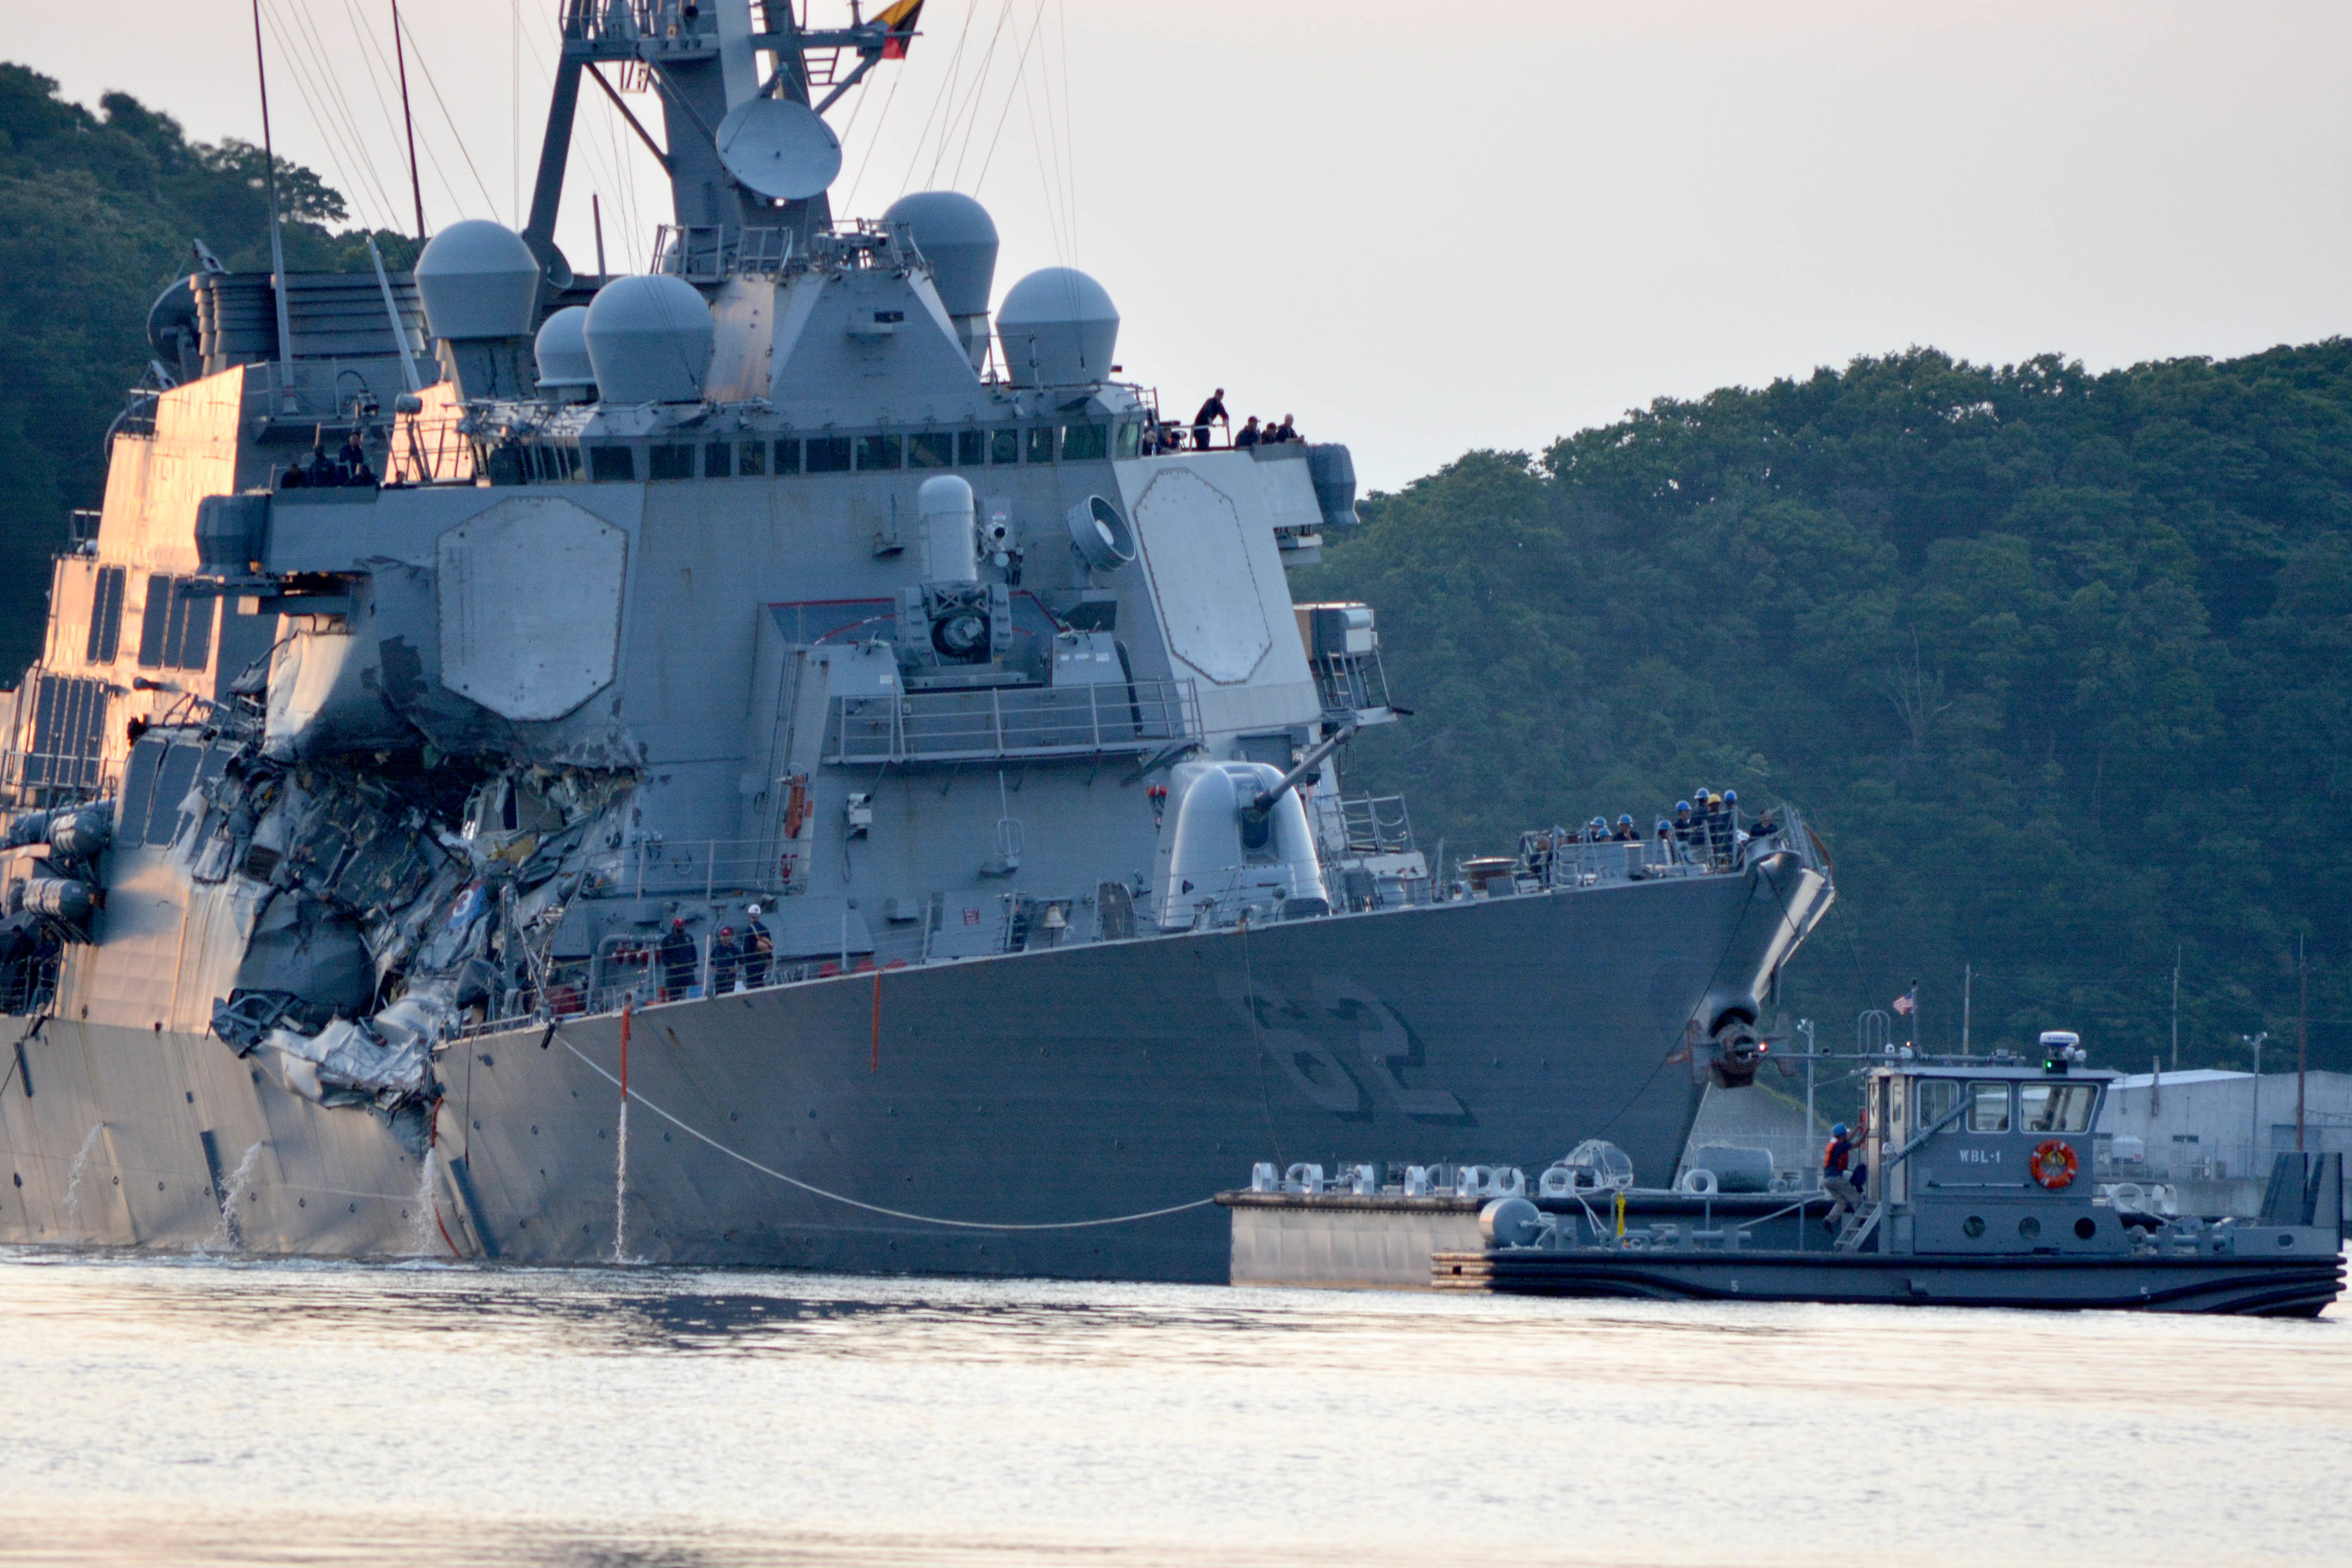 The COs of the destroyers Fitzgerald and John S. McCain will face negligent homicide charges in connection to collisions last summer that killed 17 sailors. (MC1 Peter Burghart/Navy)